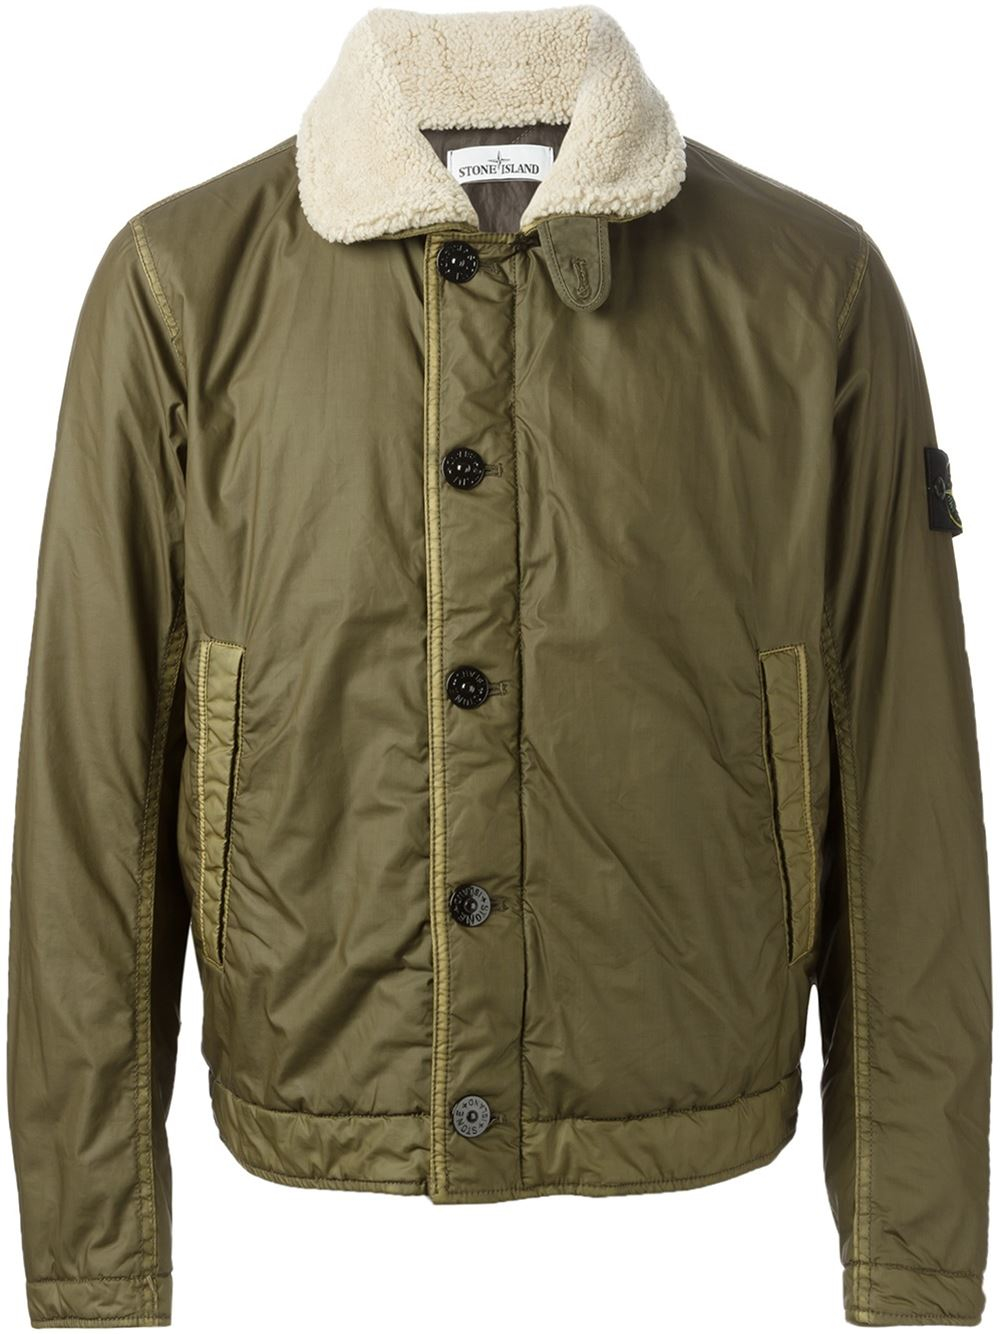 stone island faux fur collar bomber jacket in green for men lyst. Black Bedroom Furniture Sets. Home Design Ideas